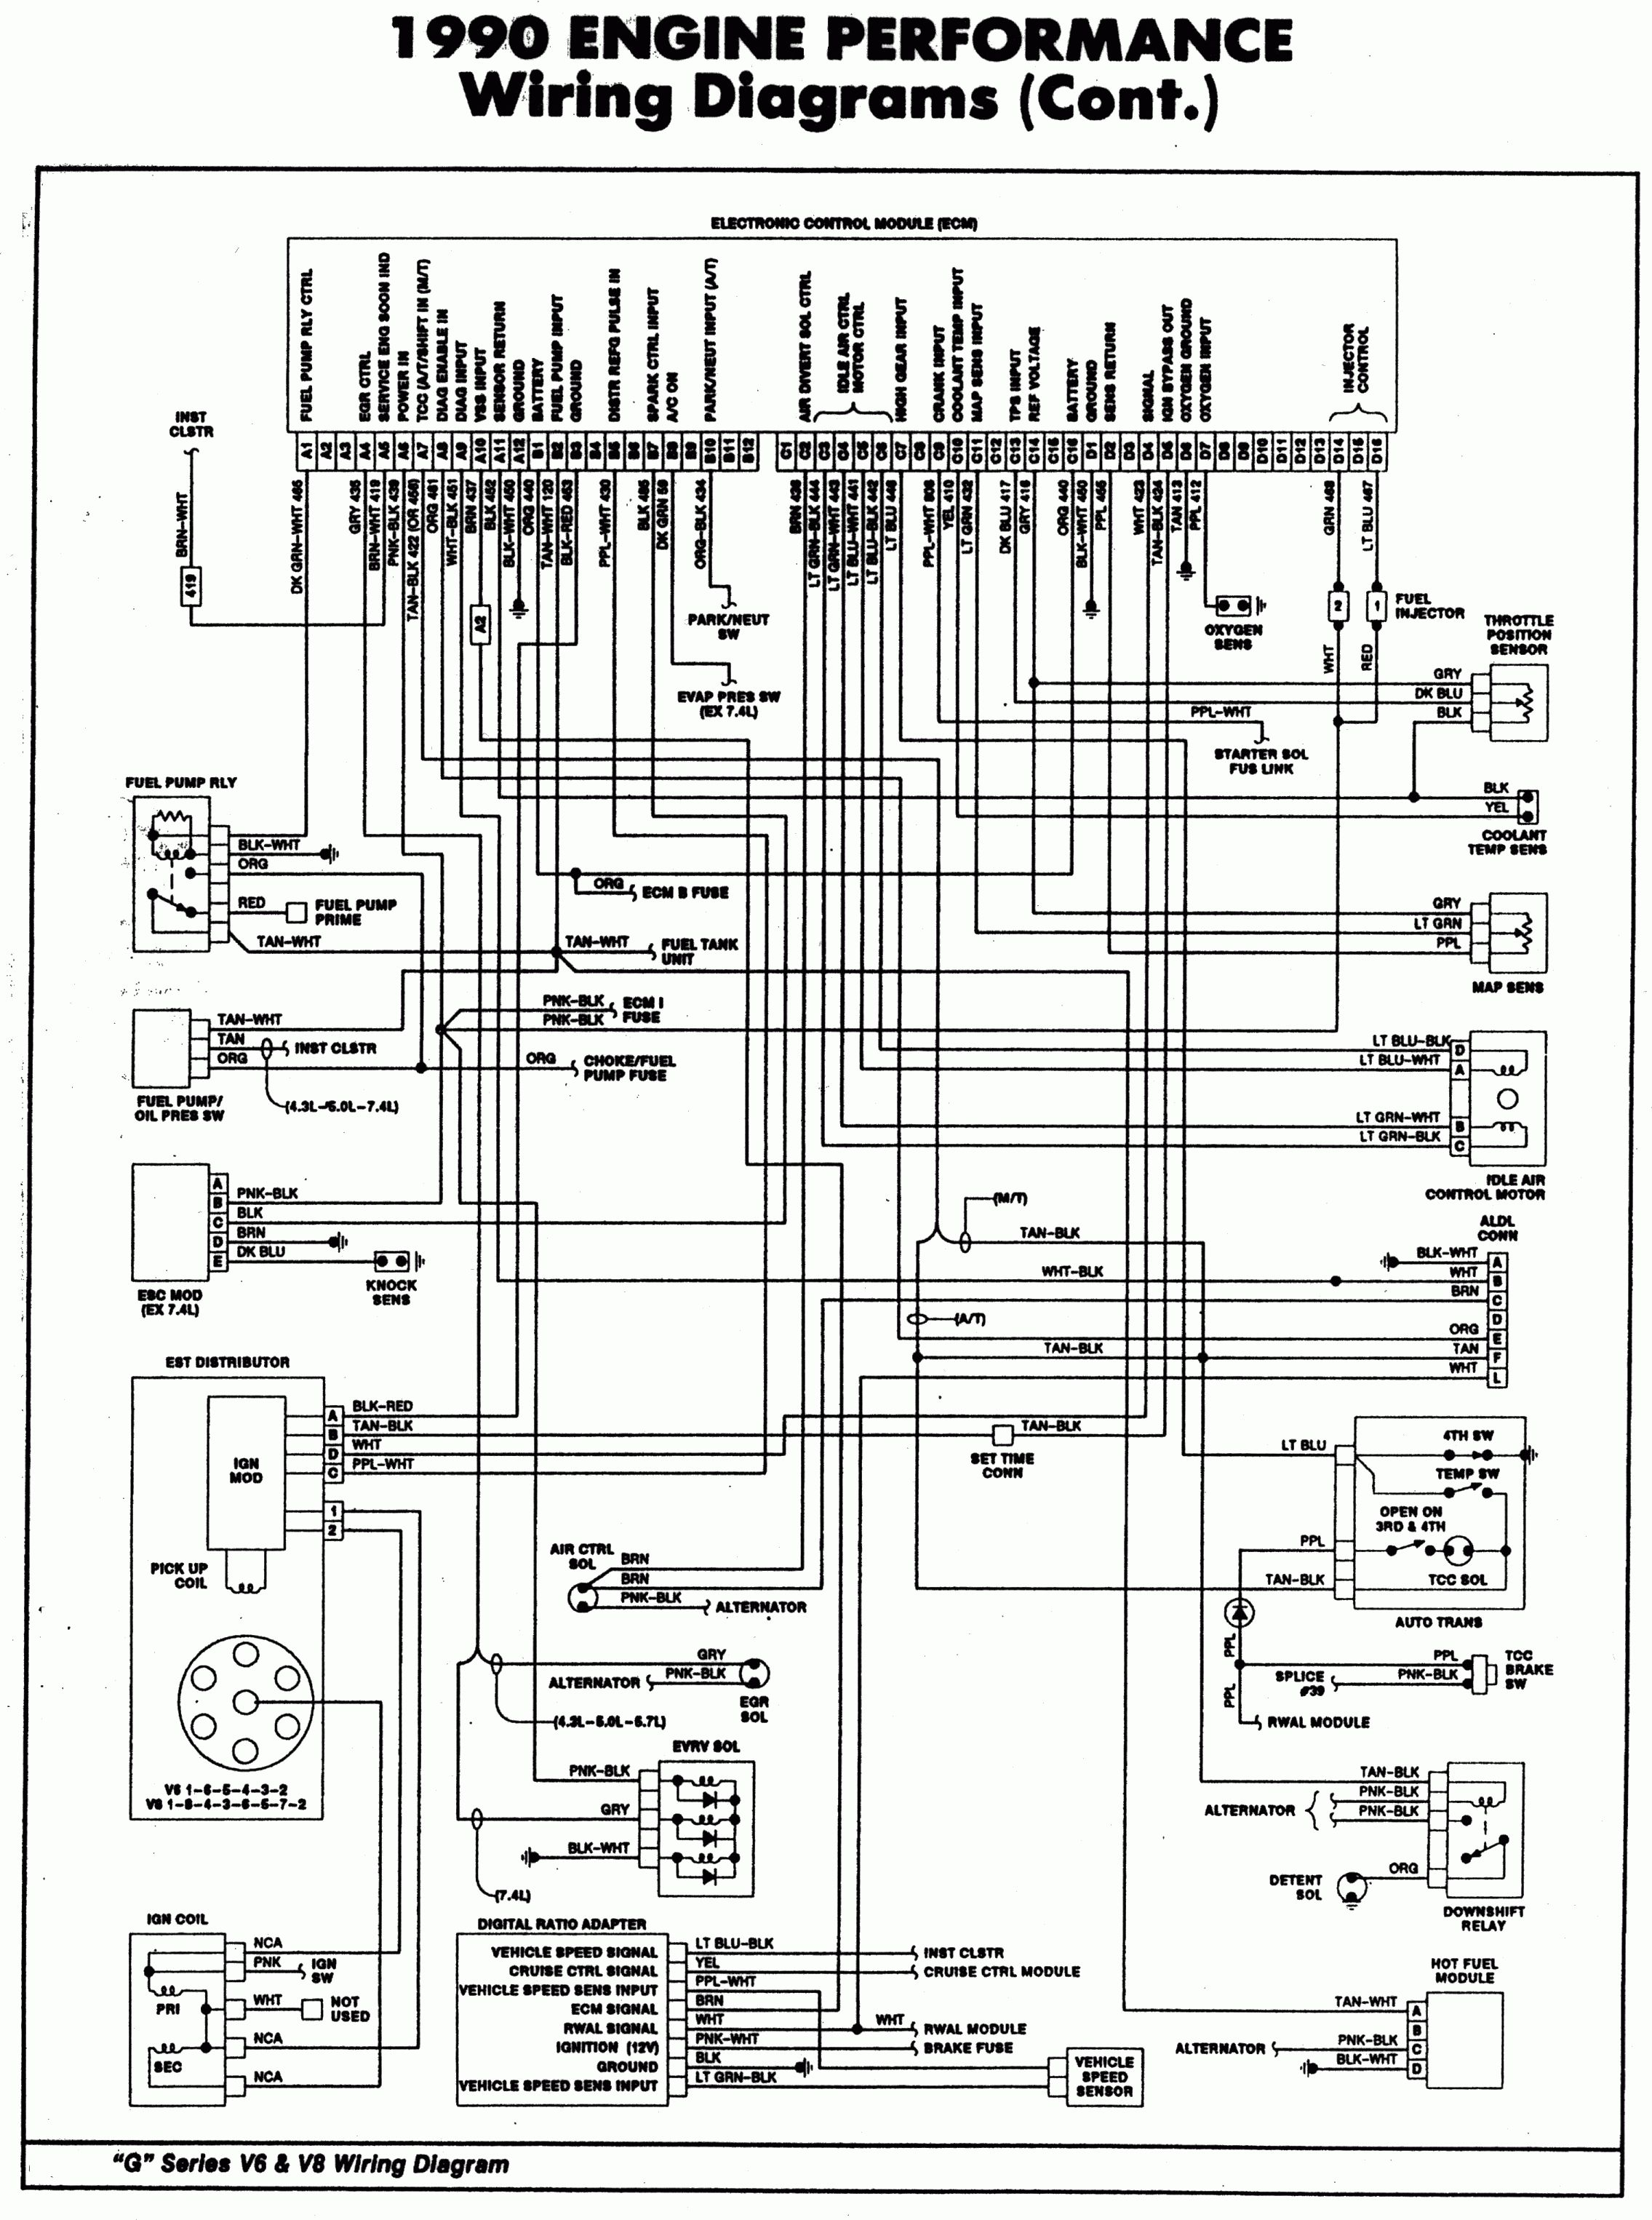 1990 Engine Performance Wiring Diagram With Control Module And